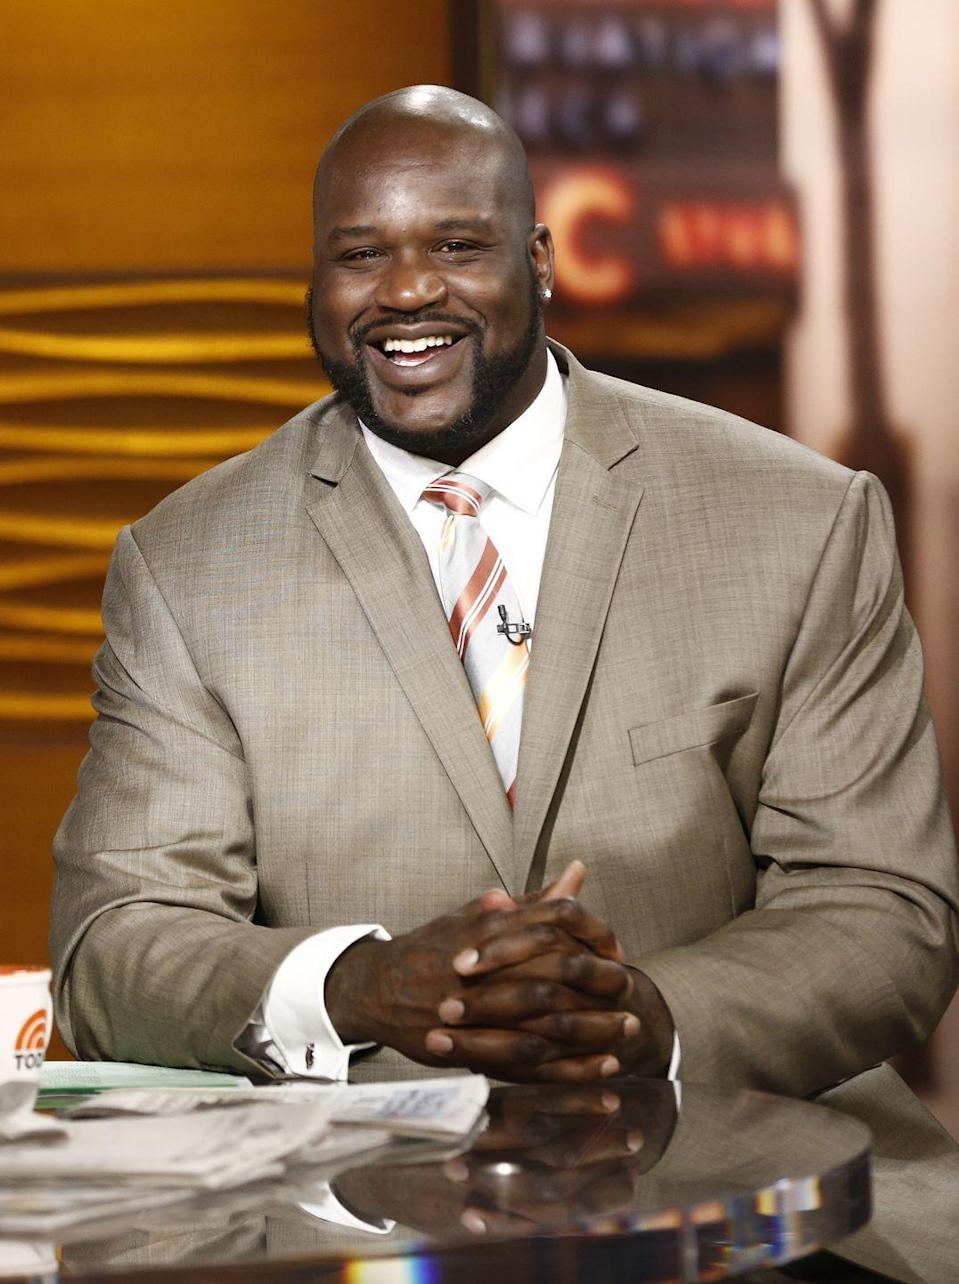 """<p>Former NBA star Shaquille O'Neal has said that in 2020 he will be running for Sheriff—but has yet to reveal where. """"This is not about politics,"""" O'Neal told WXIA (according to <a href=""""https://www.yahoo.com/entertainment/shaquille-oneal-intends-run-sheriff-2020-202144072.html"""" data-ylk=""""slk:Yahoo!;outcm:mb_qualified_link;_E:mb_qualified_link;ct:story;"""" class=""""link rapid-noclick-resp yahoo-link"""">Yahoo!</a>), a local news station in Atlanta. """"This is about bringing people closer together. You know, when I was coming up, people loved and respected the police, the deputies. And, I want to be the one to bring that back, especially in the community I serve."""" We'll have to wait and see how things turn out for O'Neal.</p>"""